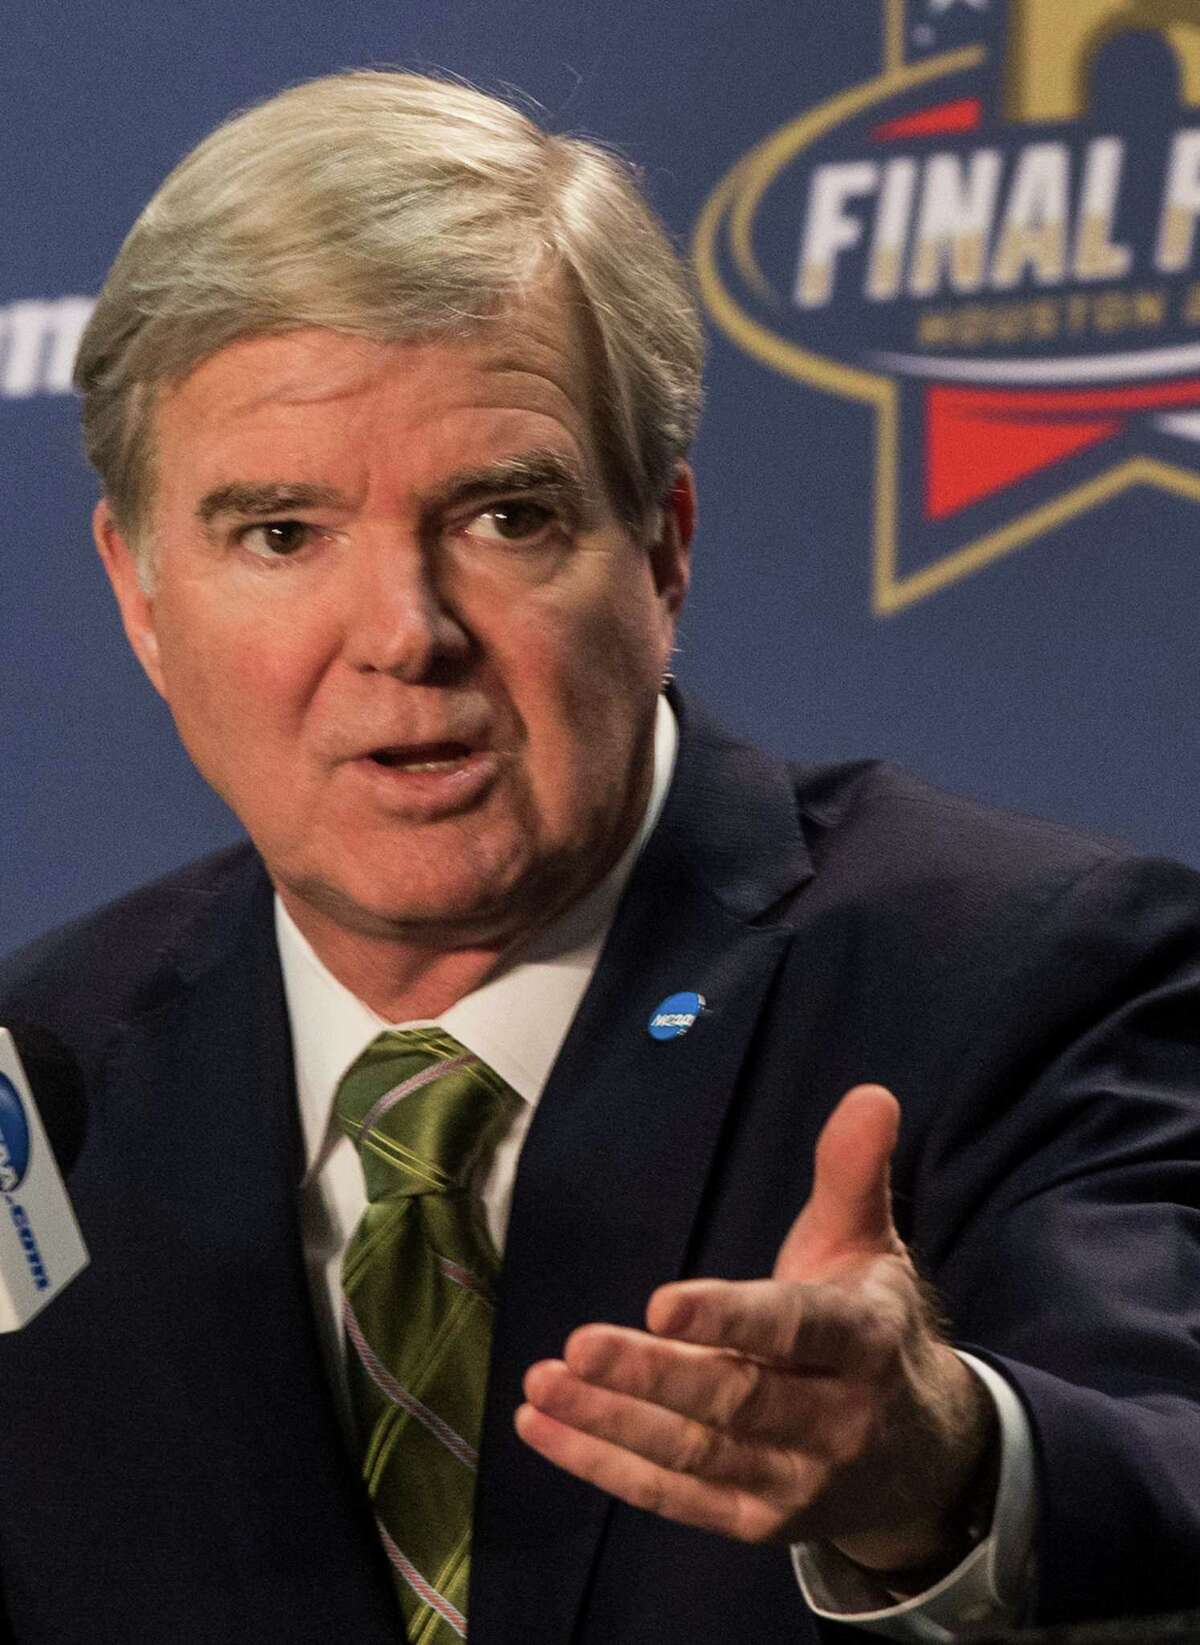 NCAA President Mark Emmert speaks to the media during a news conference at NRG Stadium on Thursday, March 31, 2016, in Houston.